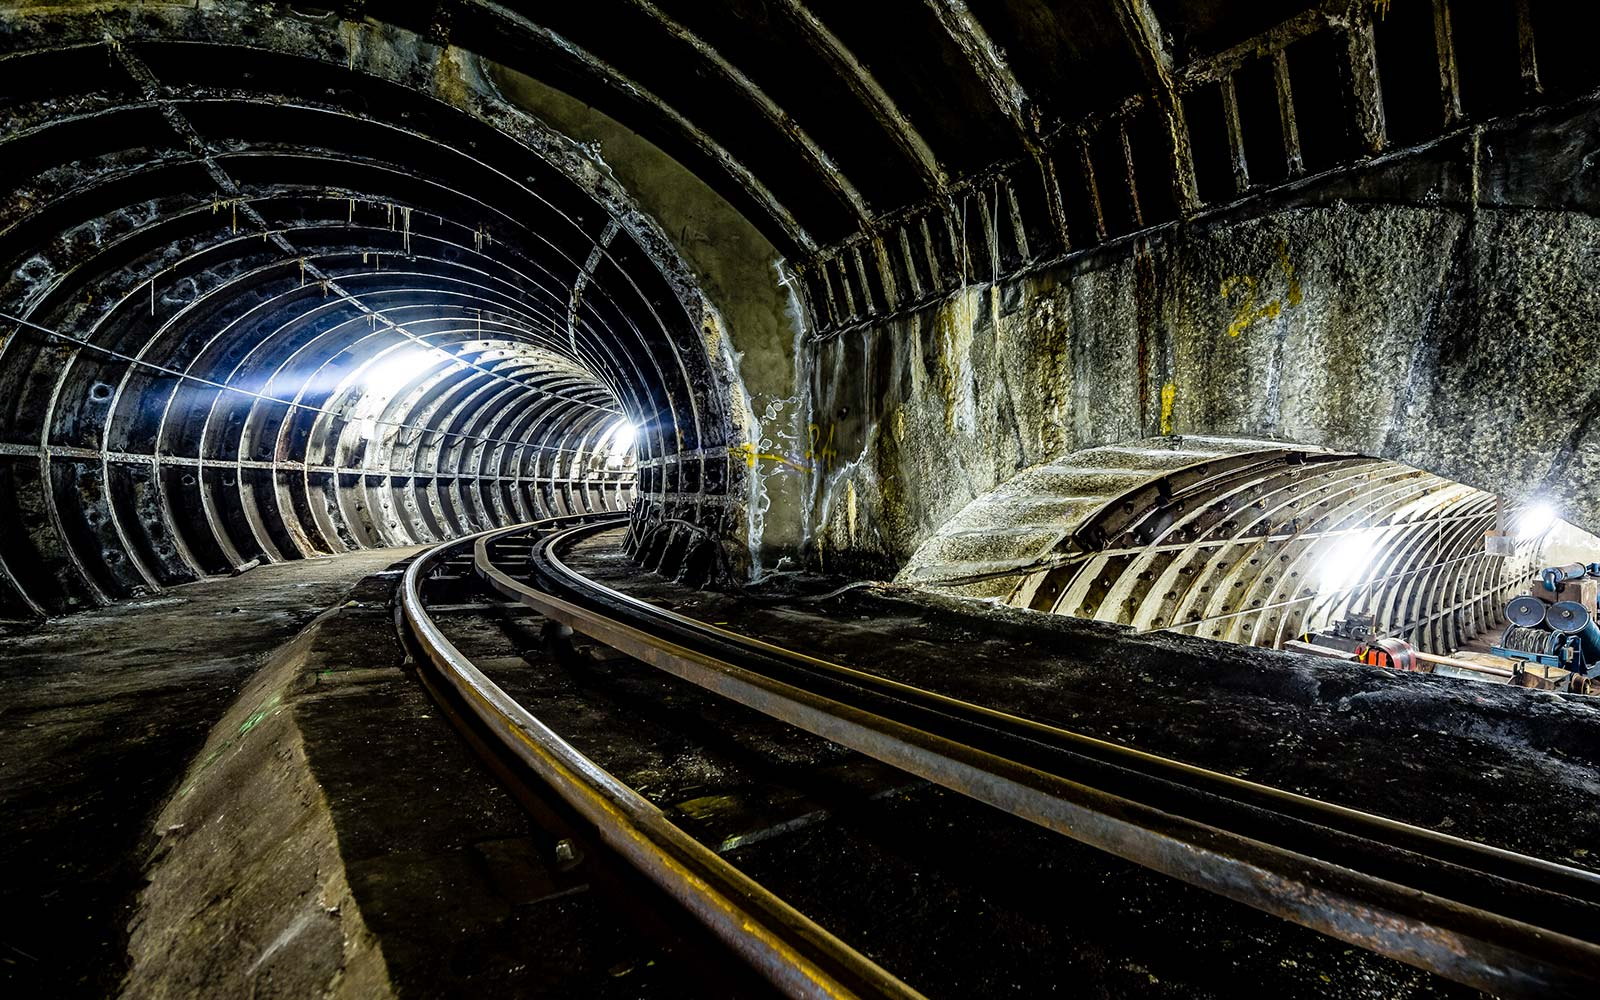 Travel on a Secret Railway Network in London